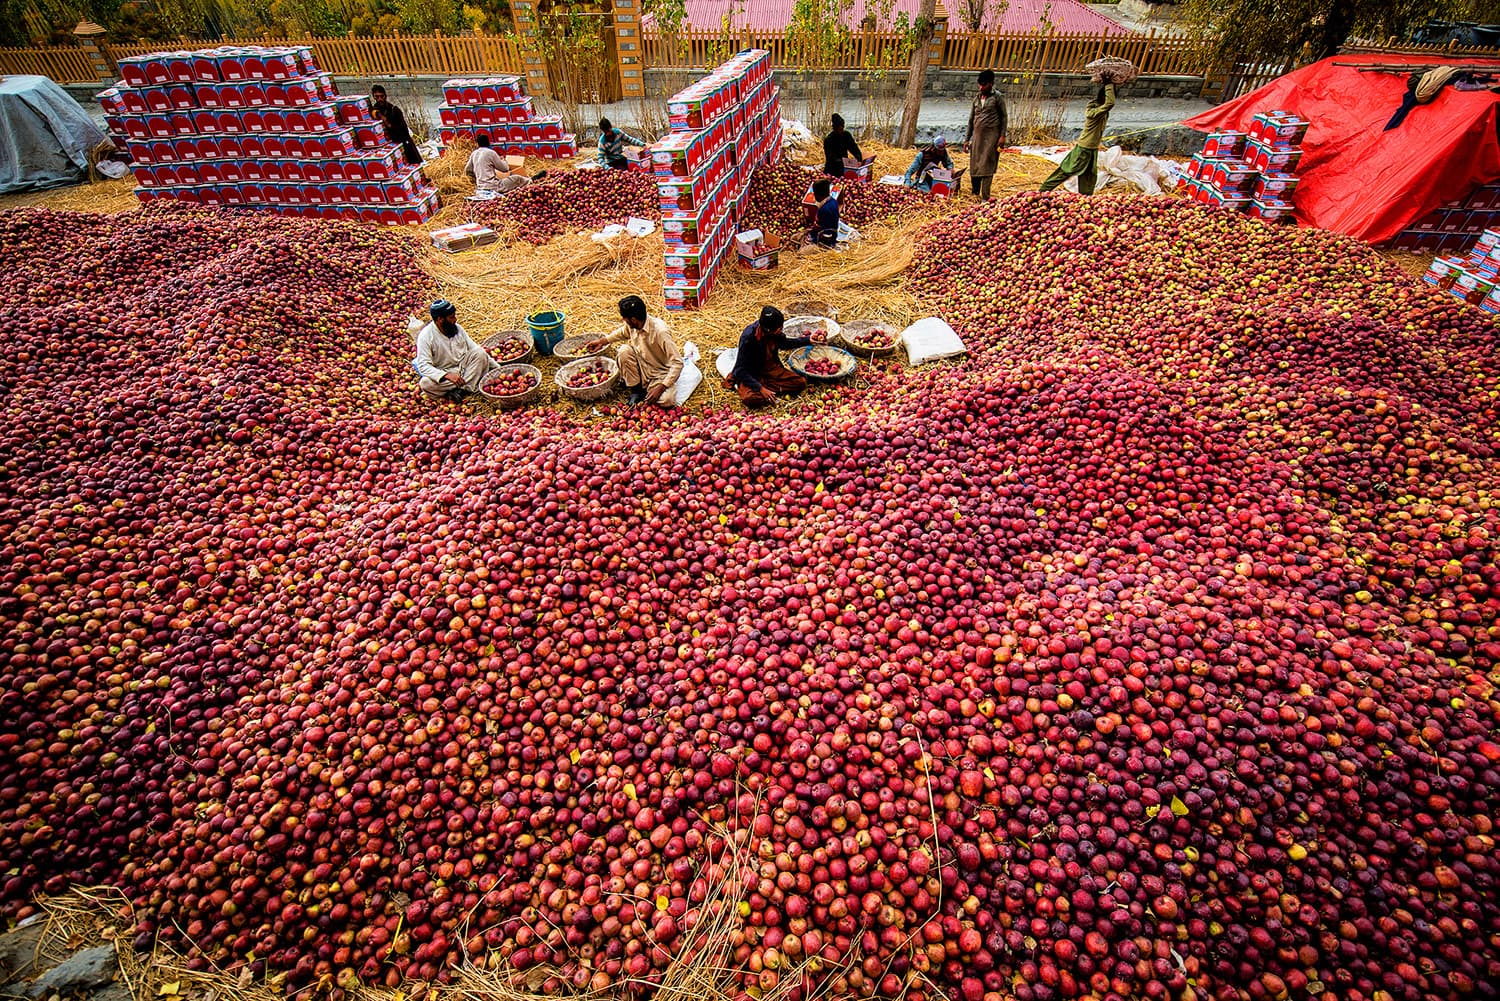 Apples of Hunza.